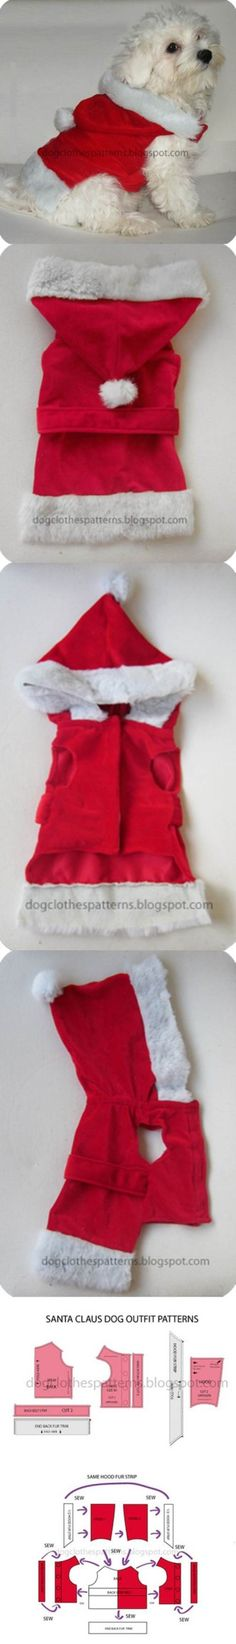 DIY Santa Claus Dog Outfit 2